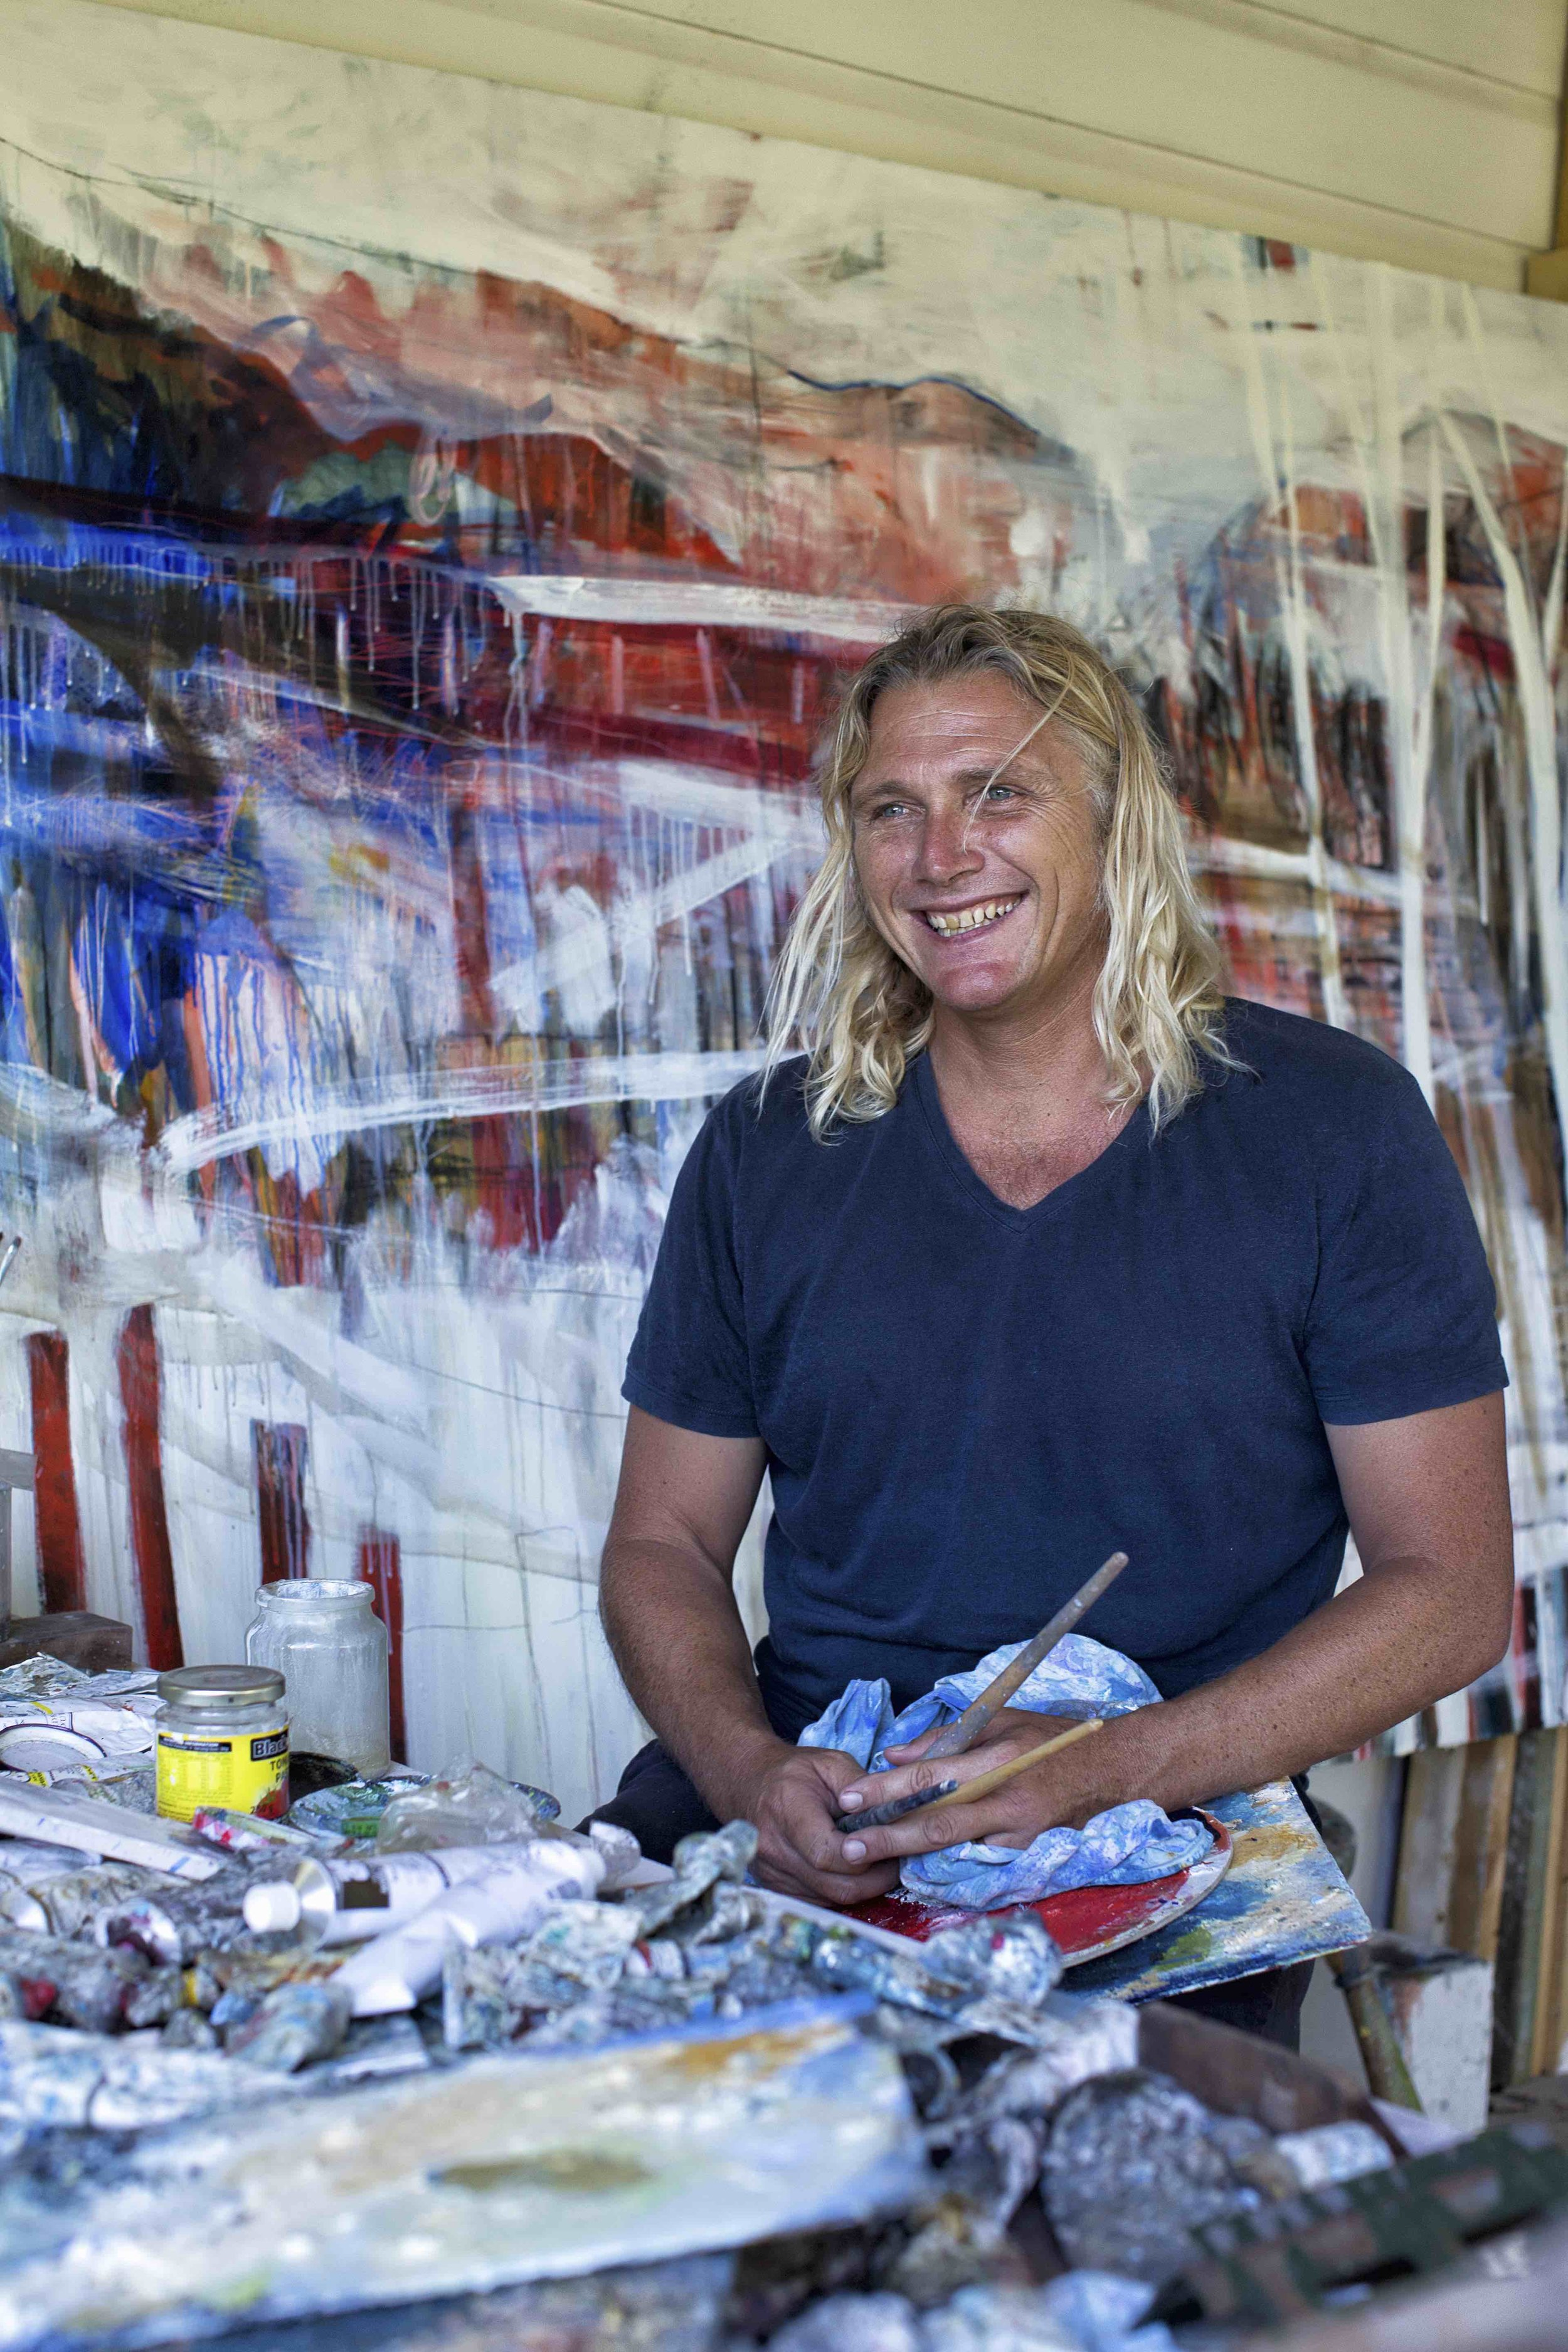 Charly in his studio in Byron Bay. Photography by Natalie Grono.